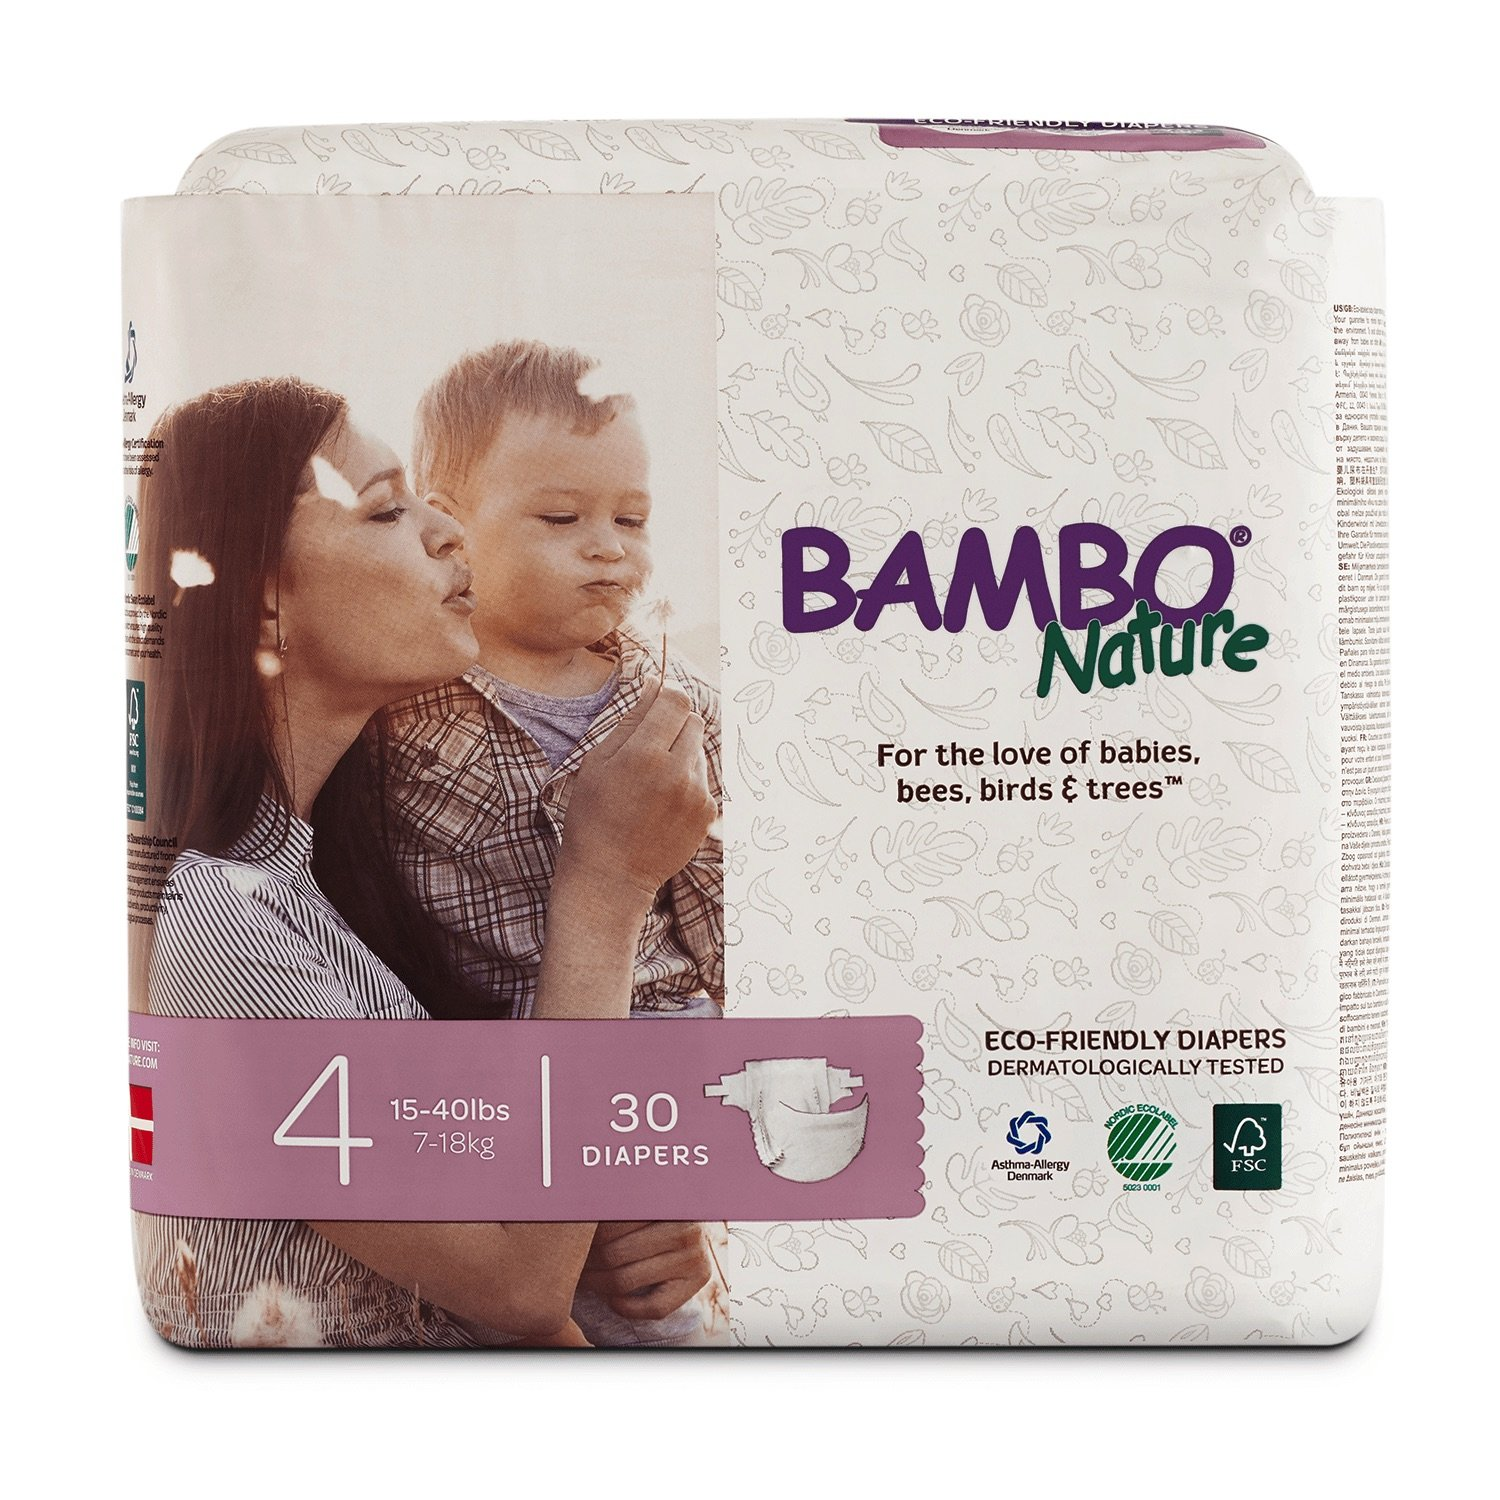 Bambo Nature Premium Baby Diapers, Size 1 (4-11 Lbs), 28 Count, Multi-Colored